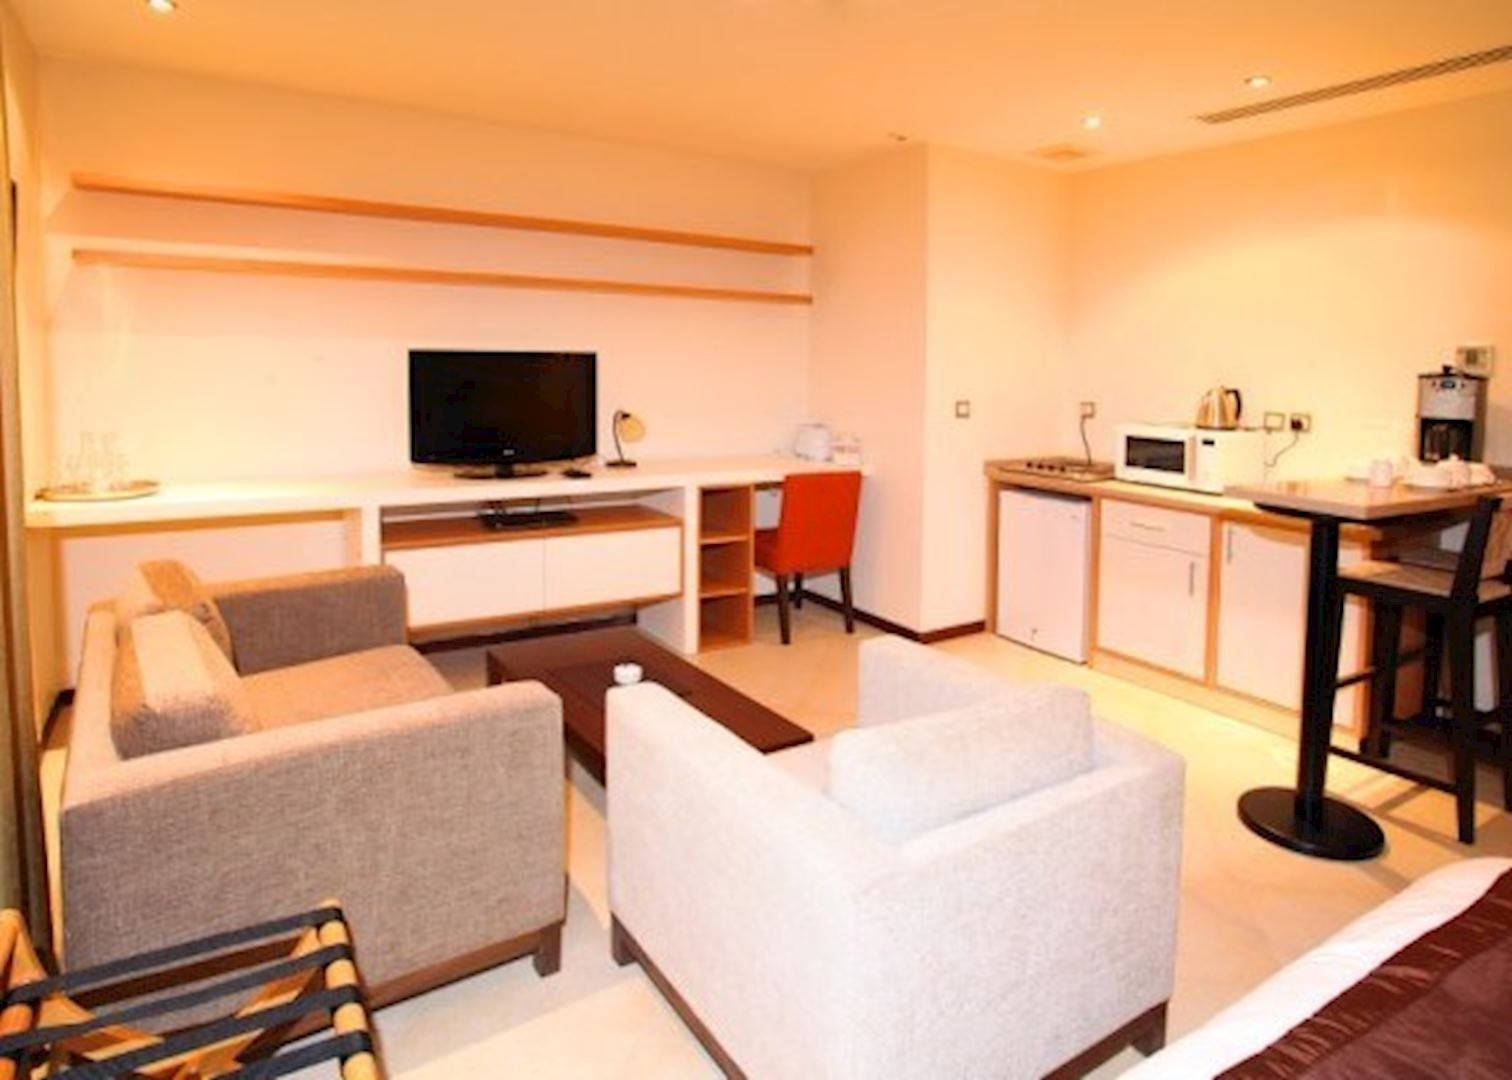 Heritage house hotels in amman audley travel for Studio apartment area